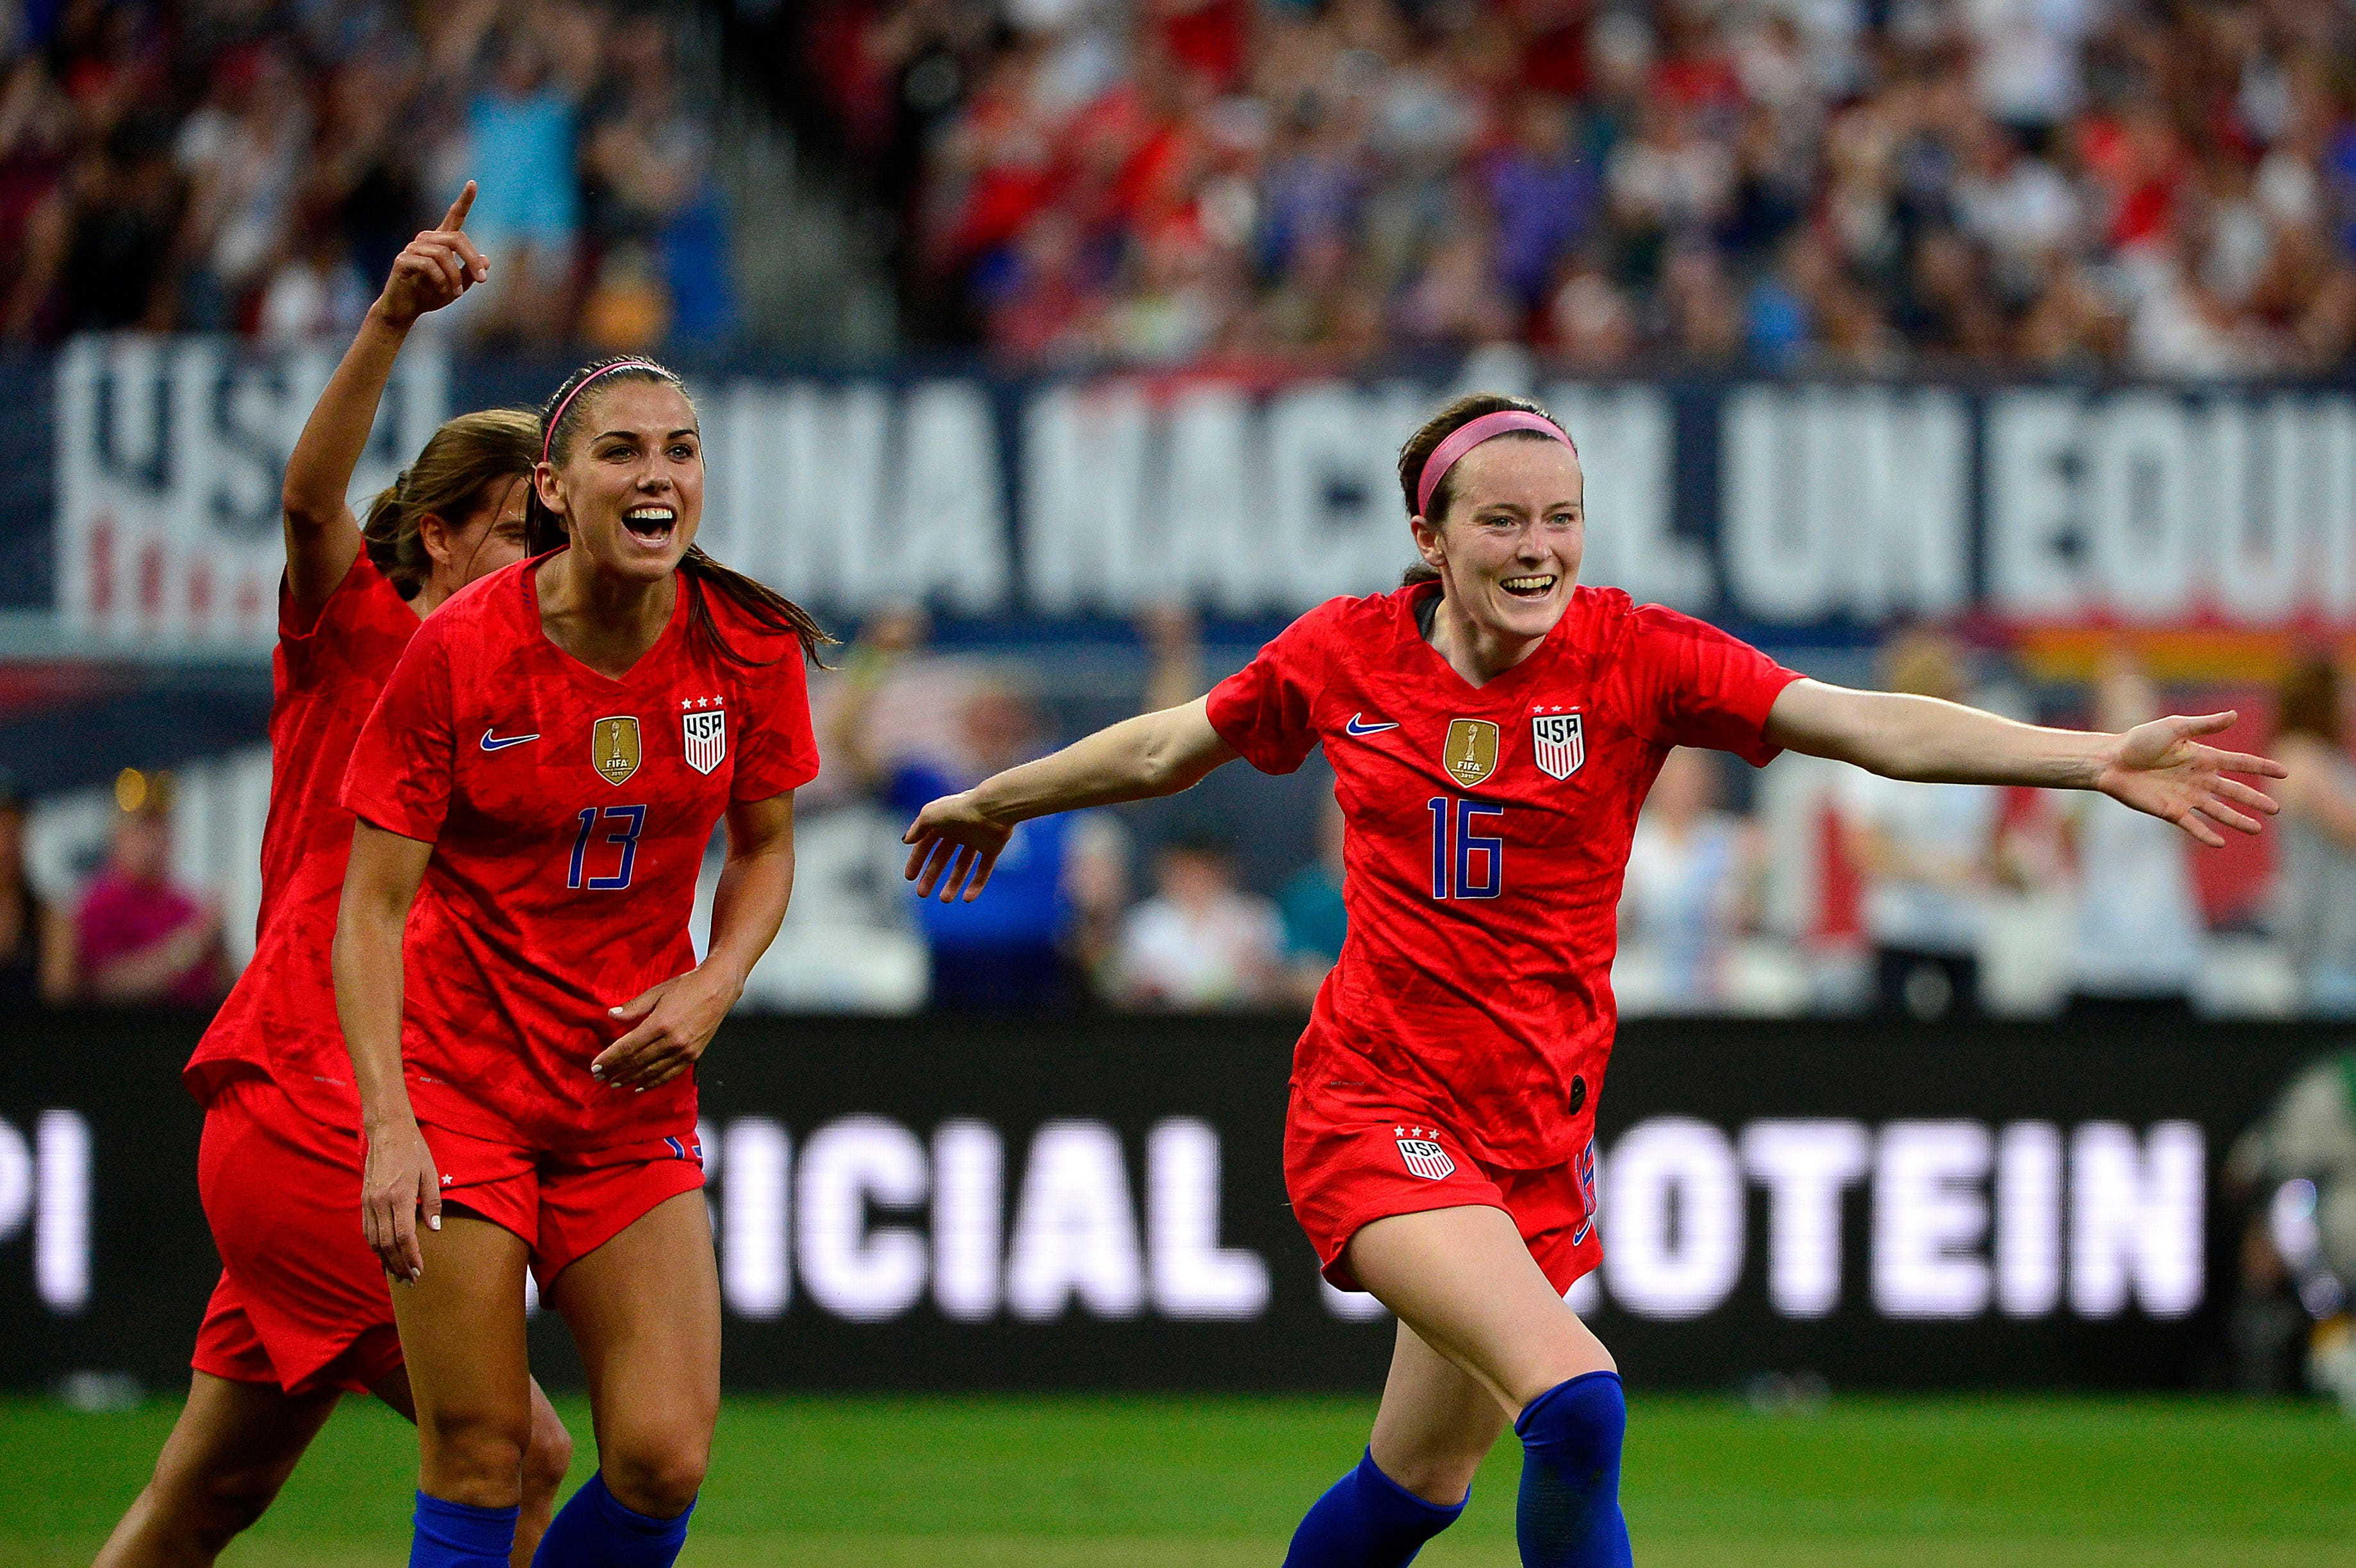 May 16, 2019; St. Louis , MO, USA; USA midfielder Rose Lavelle (16) celebrates with forward Alex Morgan (13) and forward Tobin Heath (17) after scoring against New Zealand goalkeeper Erin Nayler (not pictured) in the first half during a Countdown to the Cup Women's Soccer match at Busch Stadium. Mandatory Credit: Jeff Curry-USA TODAY Sports